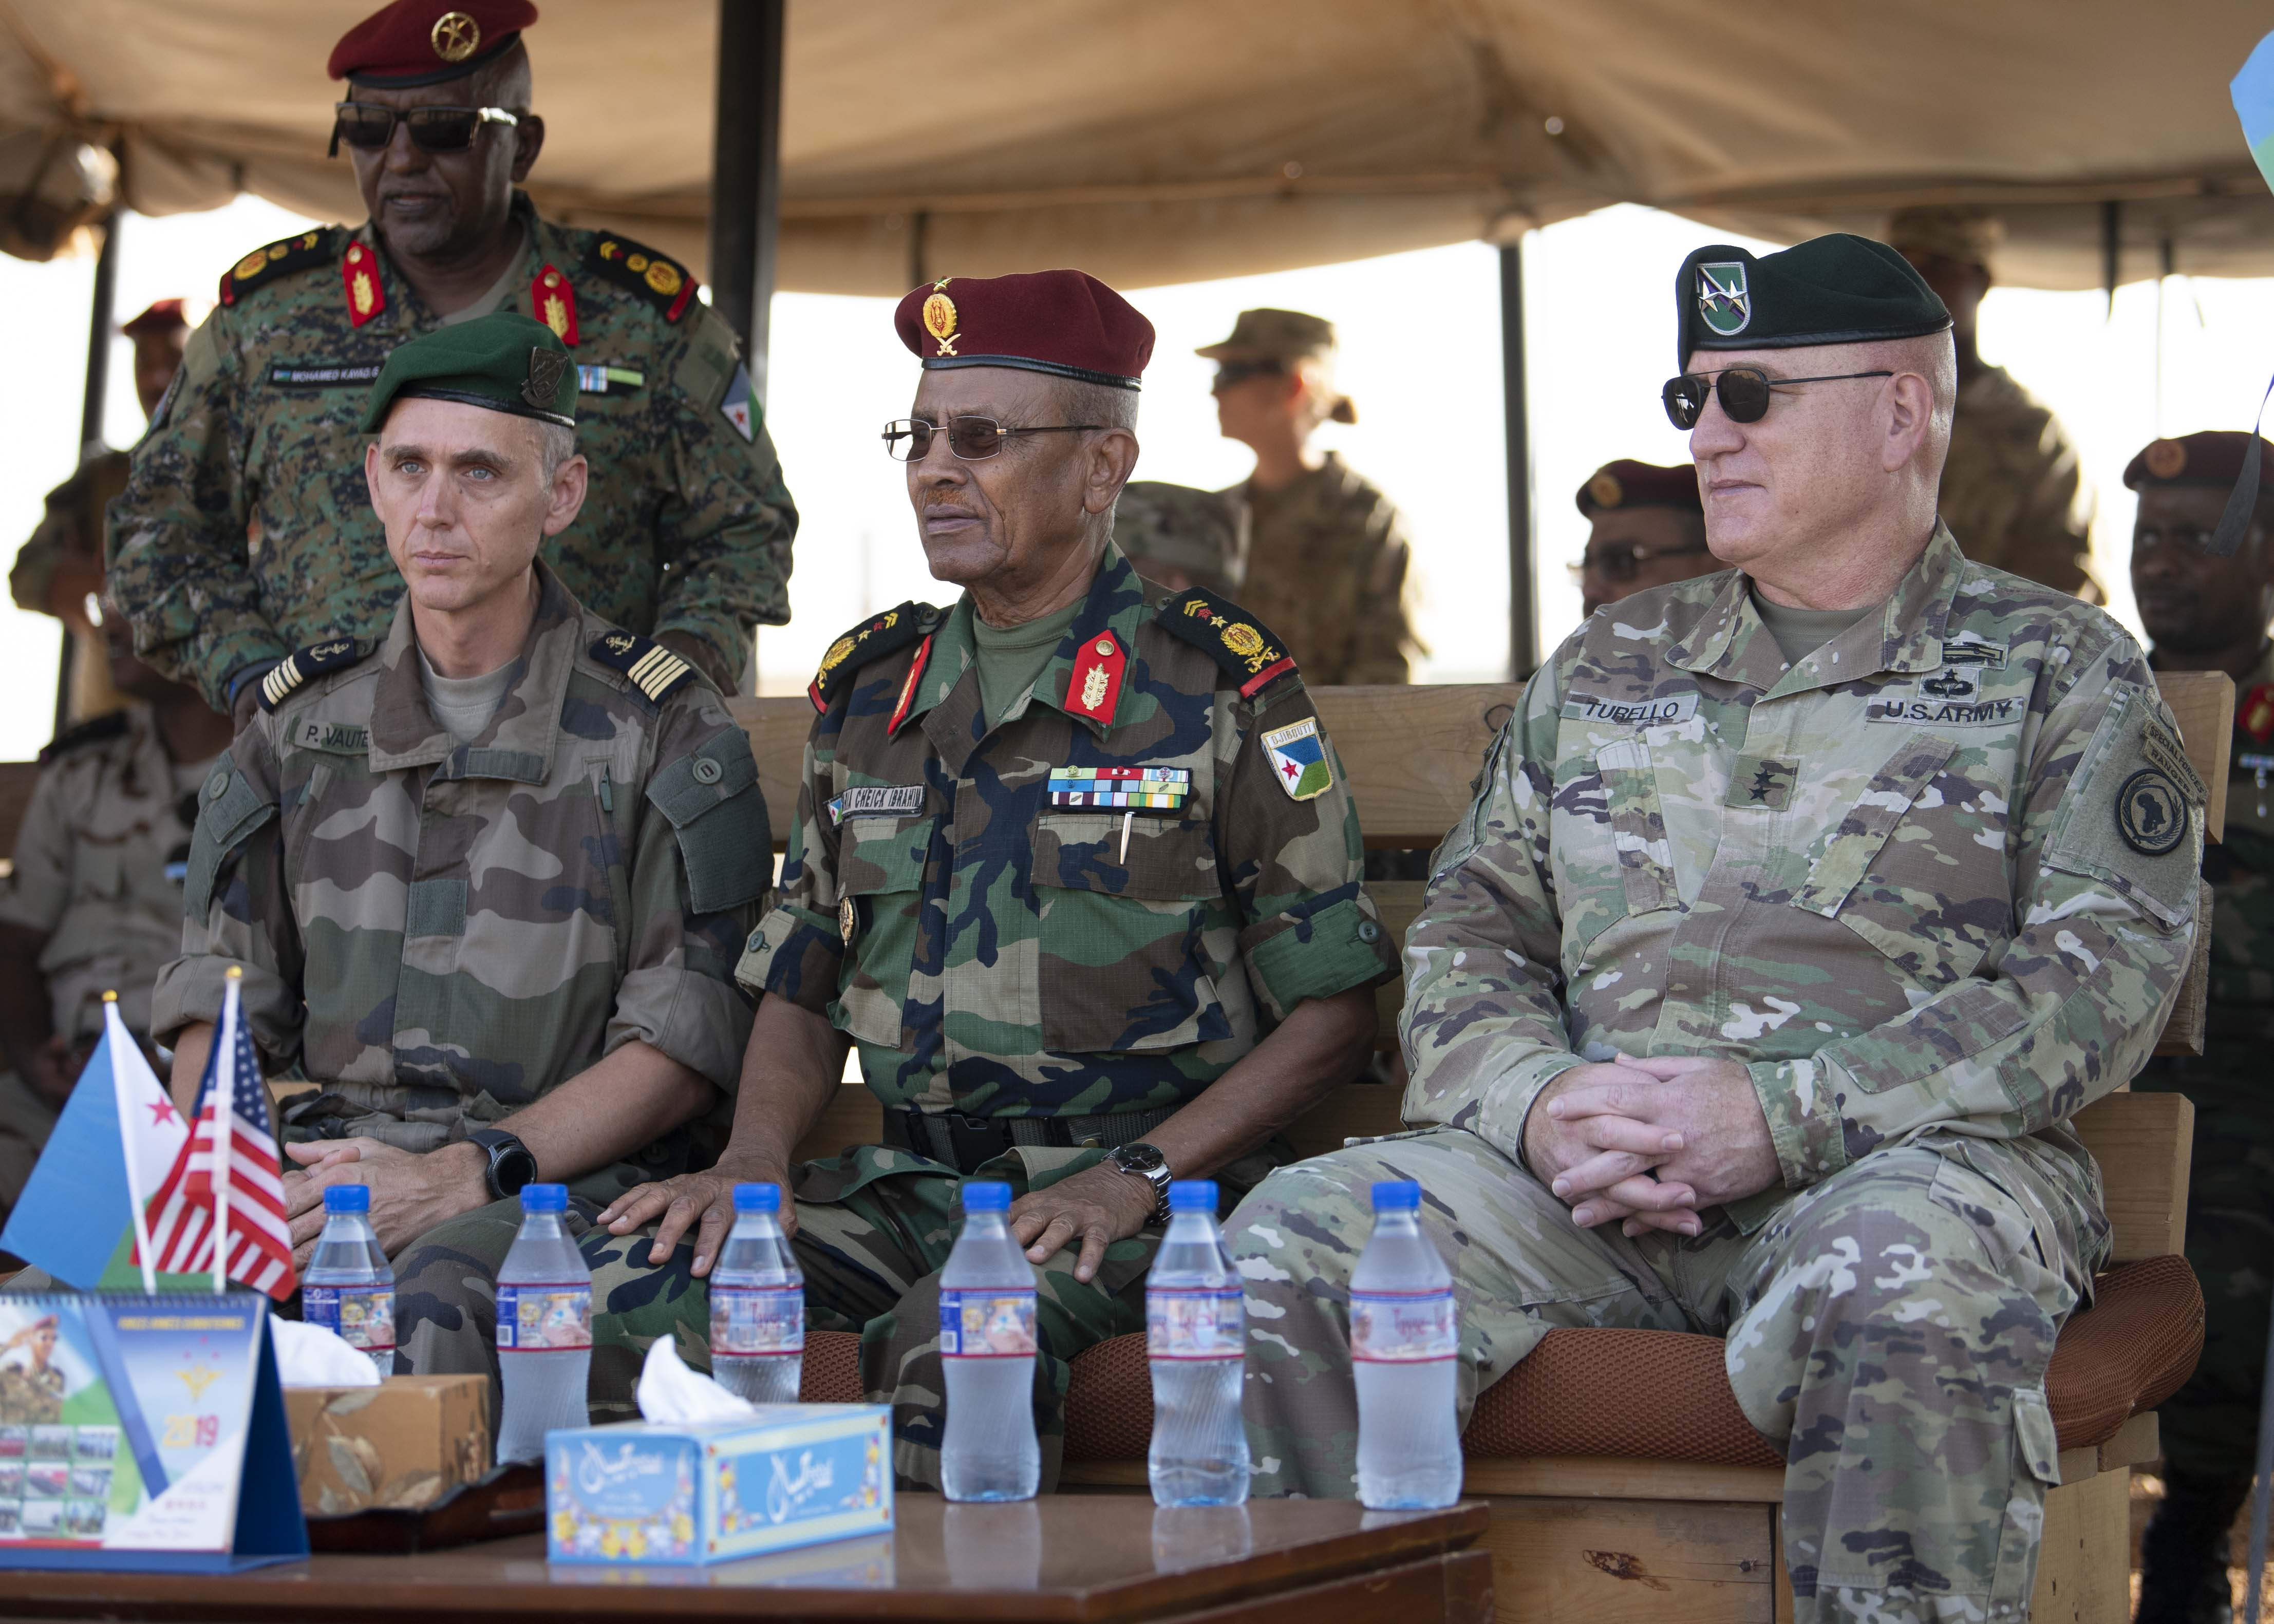 U.S. Army Maj. Gen. Michael D. Turello, commanding general of Combined Joint Task Force-Horn of Africa (CJTF-HOA) (right), Djiboutian Lt. Gen. Zakaria Cheikh Ibrahim, chief of staff of the Djibouti Armed Forces (center) and French Navy Capt. Phillippe, deputy commander French Forces of Djibouti, sit during the Rapid Intervention Battalion (RIB) change of command, in Djibouti, Oct. 31, 2019. Djiboutian Maj. Mohamed Assowen assumed command of the RIB from Djiboutian Capt. Omar Ali Hassan. (U.S. Air Force photo by Staff Sgt. J.D. Strong II)